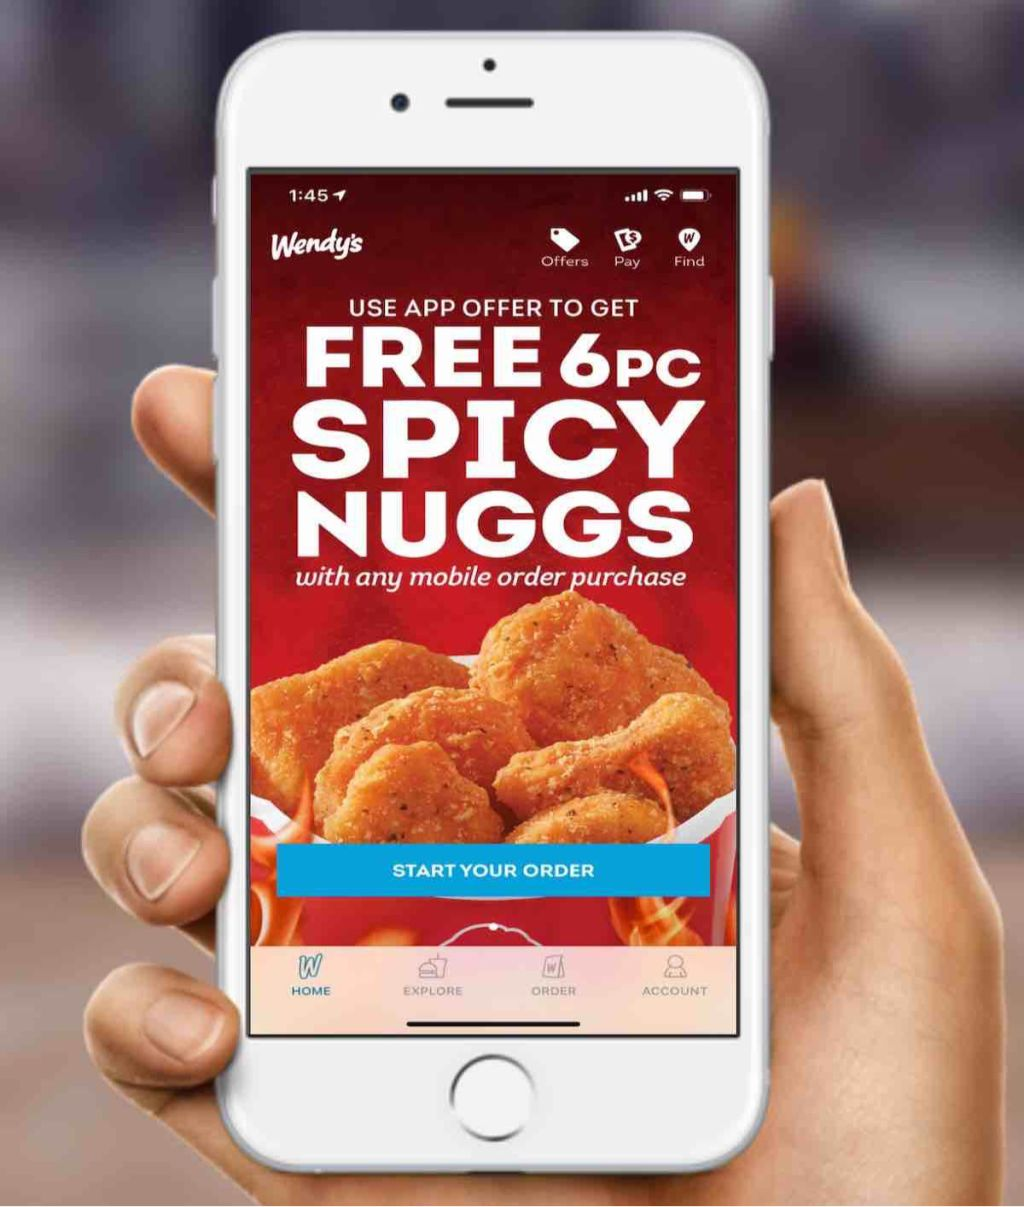 wendys spicy nuggets screen shot on phone